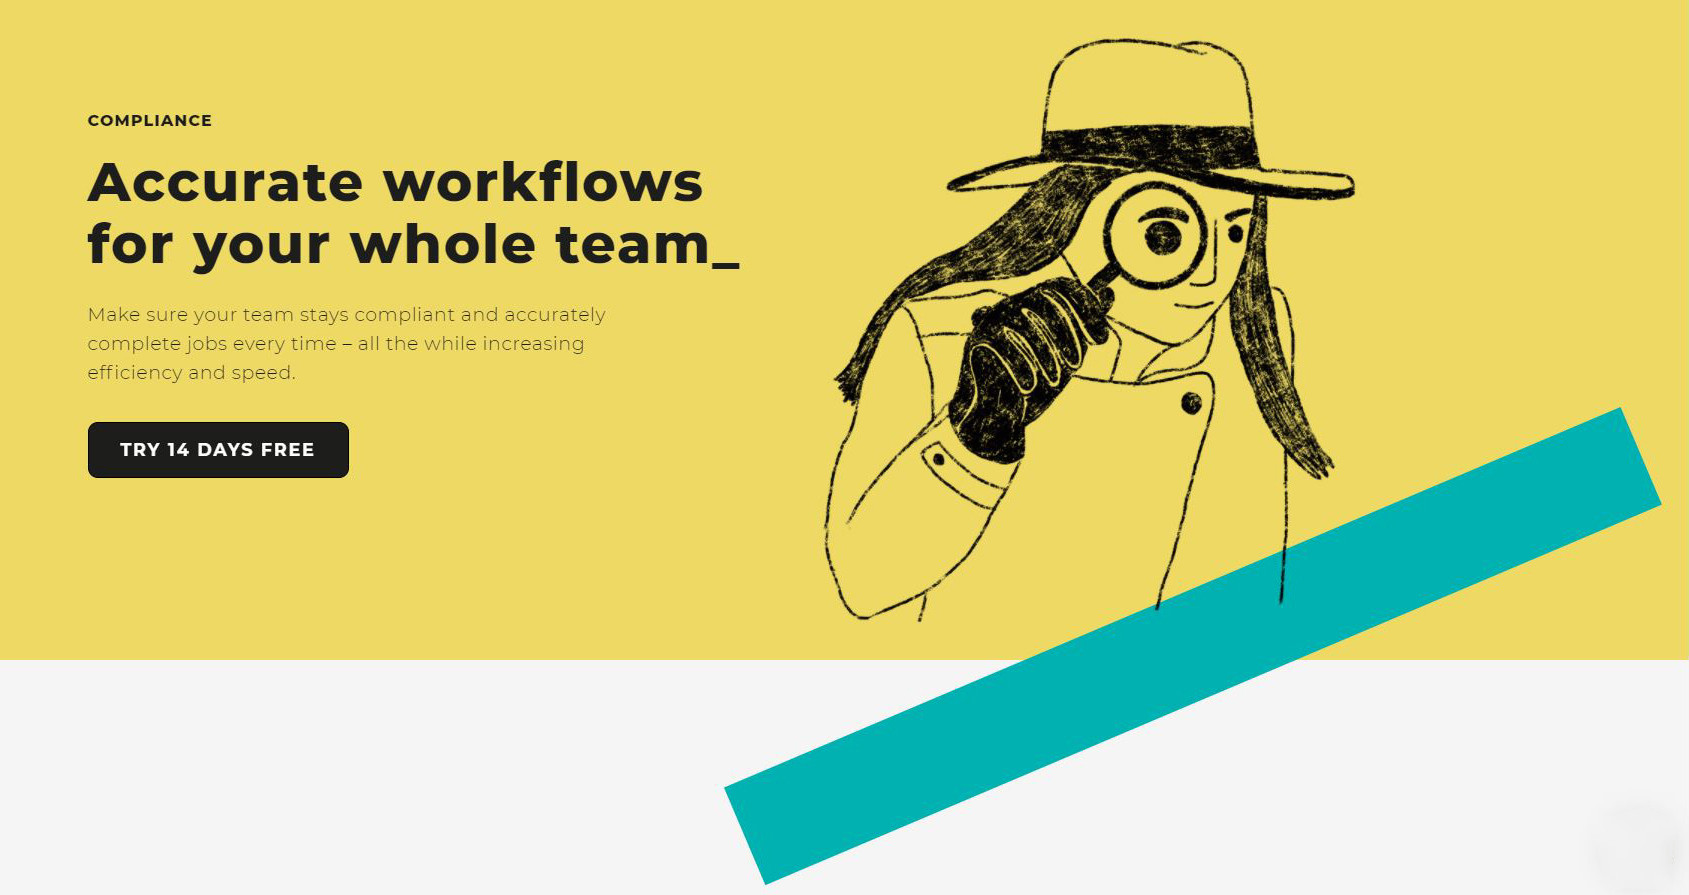 Accurate workflows for your whole team